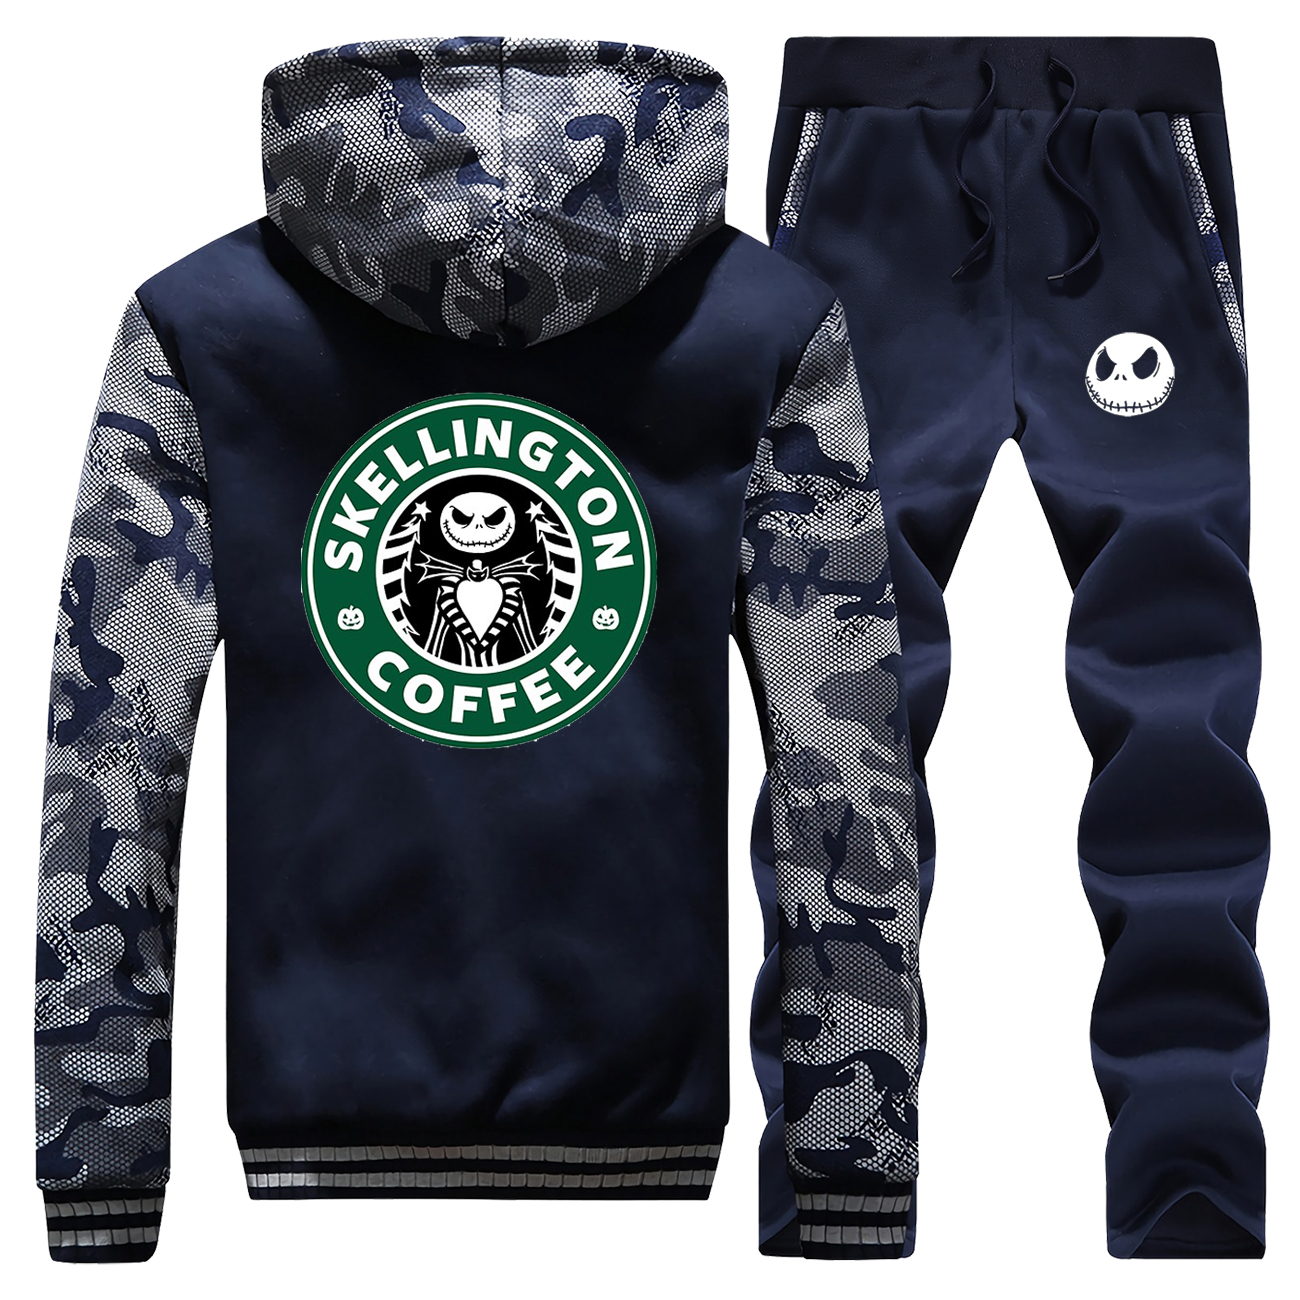 2019 Winter Jacket Warm Suit Mens Thick Fleece Hoodies Jack Skellington Coffee Streetwear Men Sweatshirt+Sweatpants 2 Piece Sets